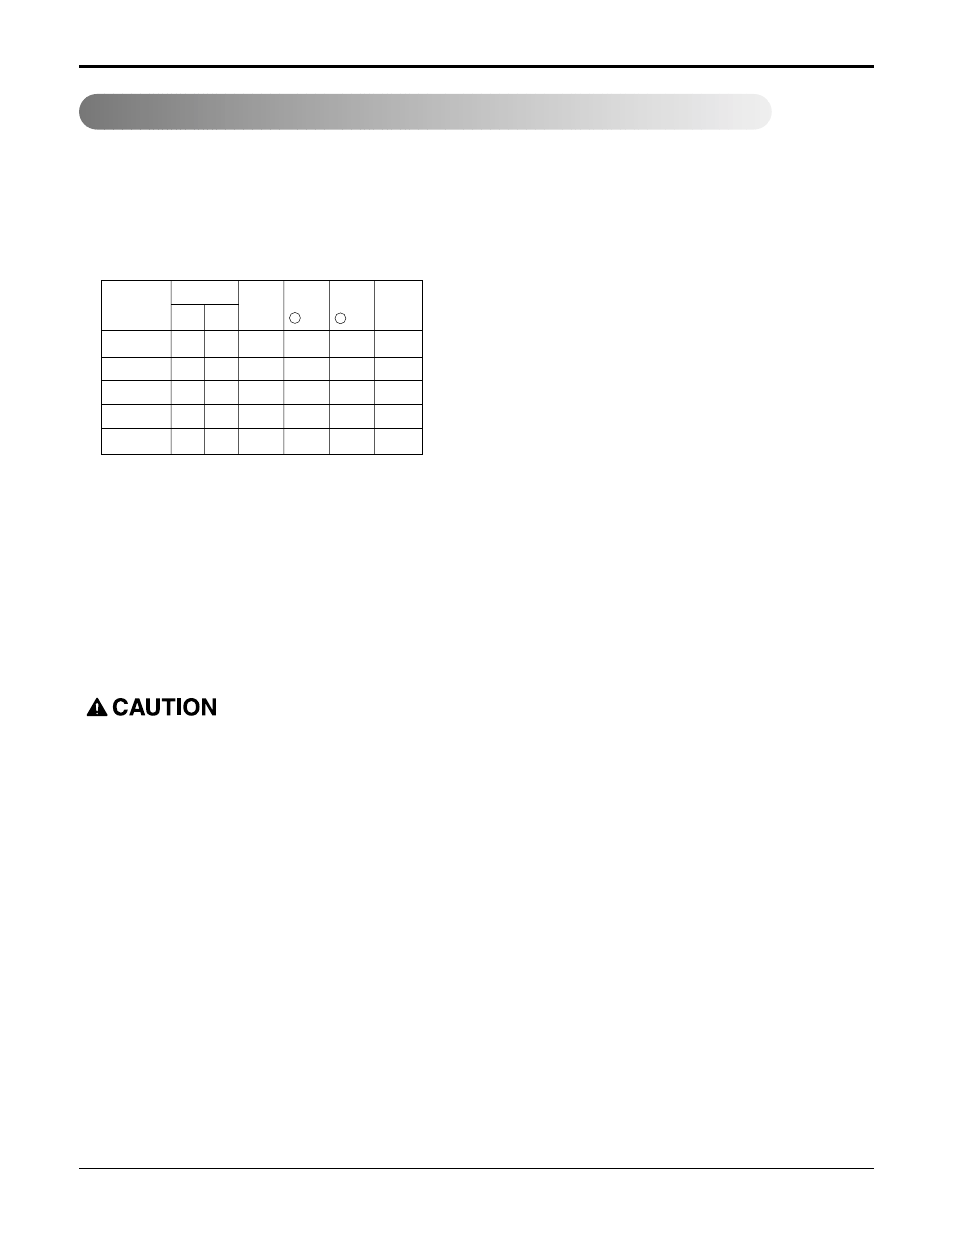 Charging | LG LSU120HE User Manual | Page 33 / 83